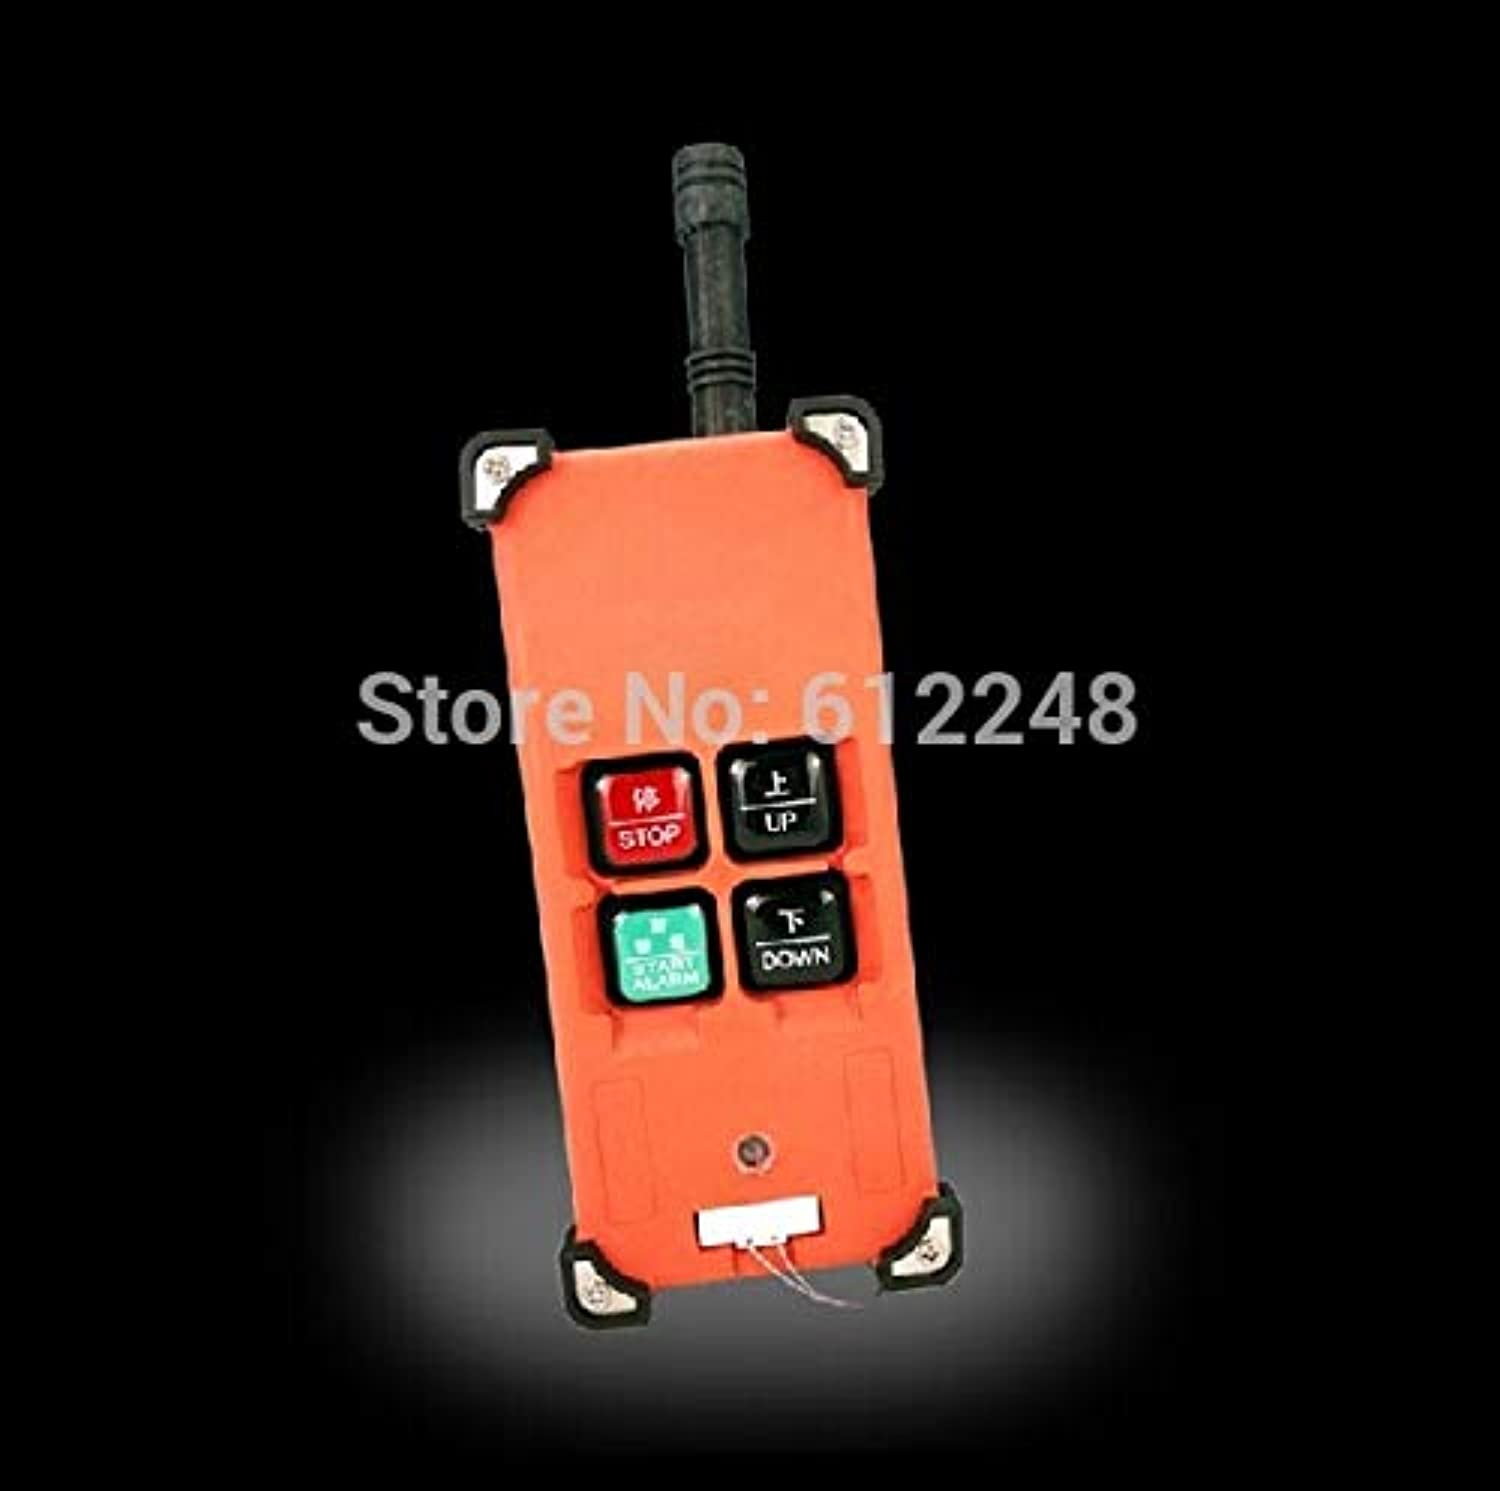 Micro Electric Electric Electric Hoist Remote Control Wireless